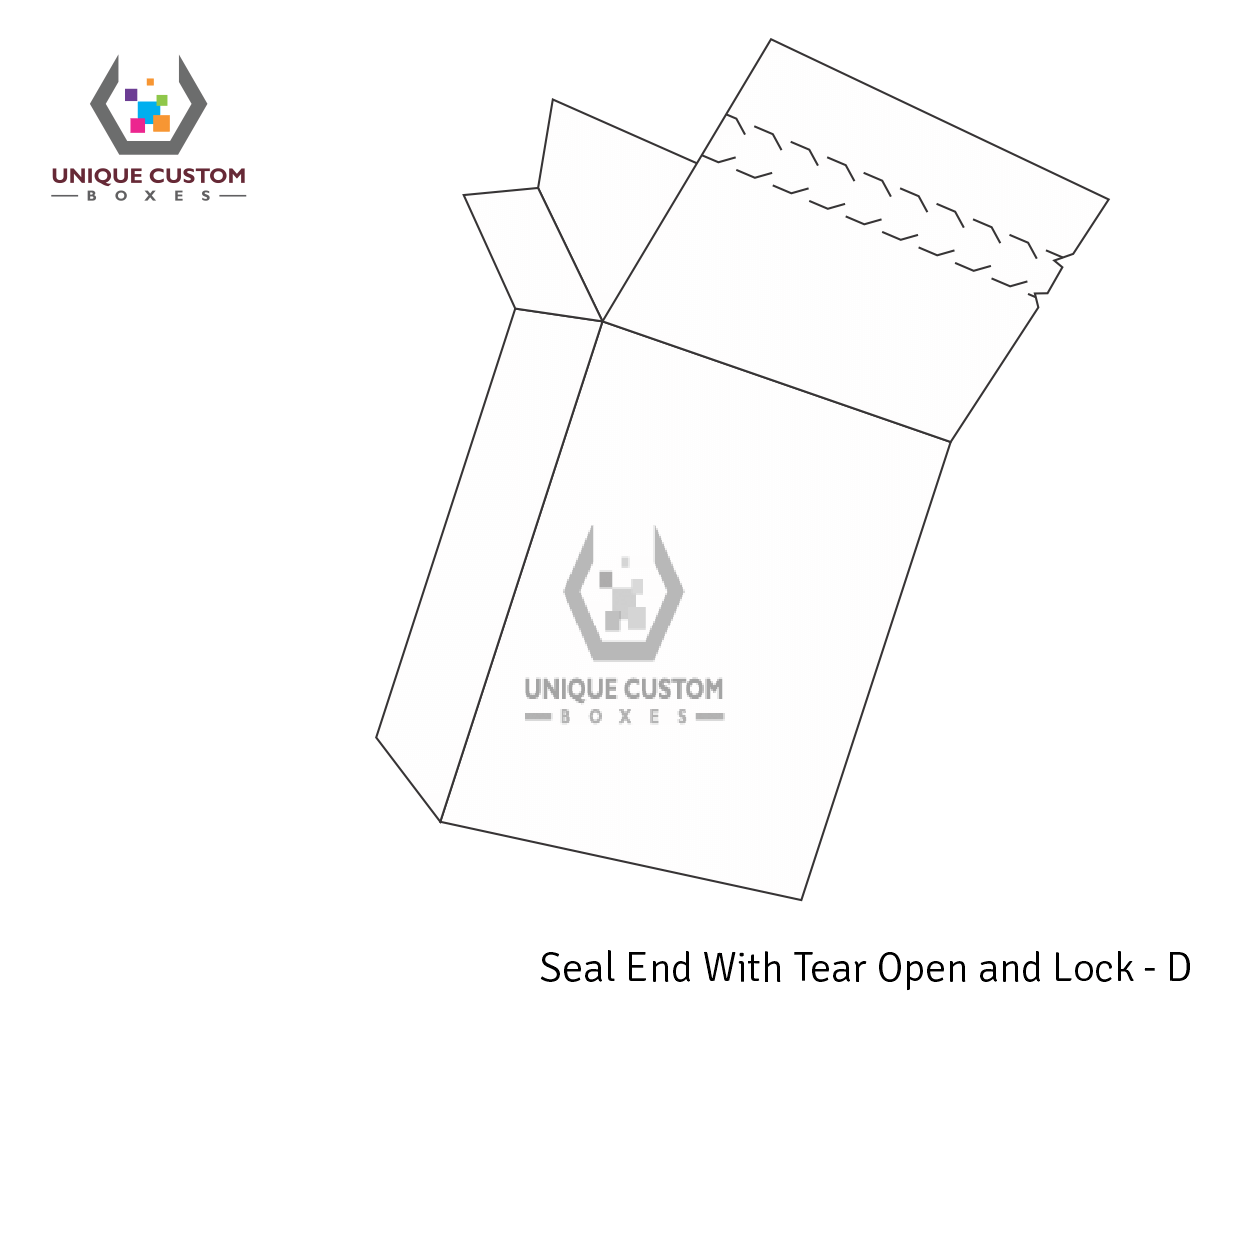 Seal End With Tear Open and Lock-3